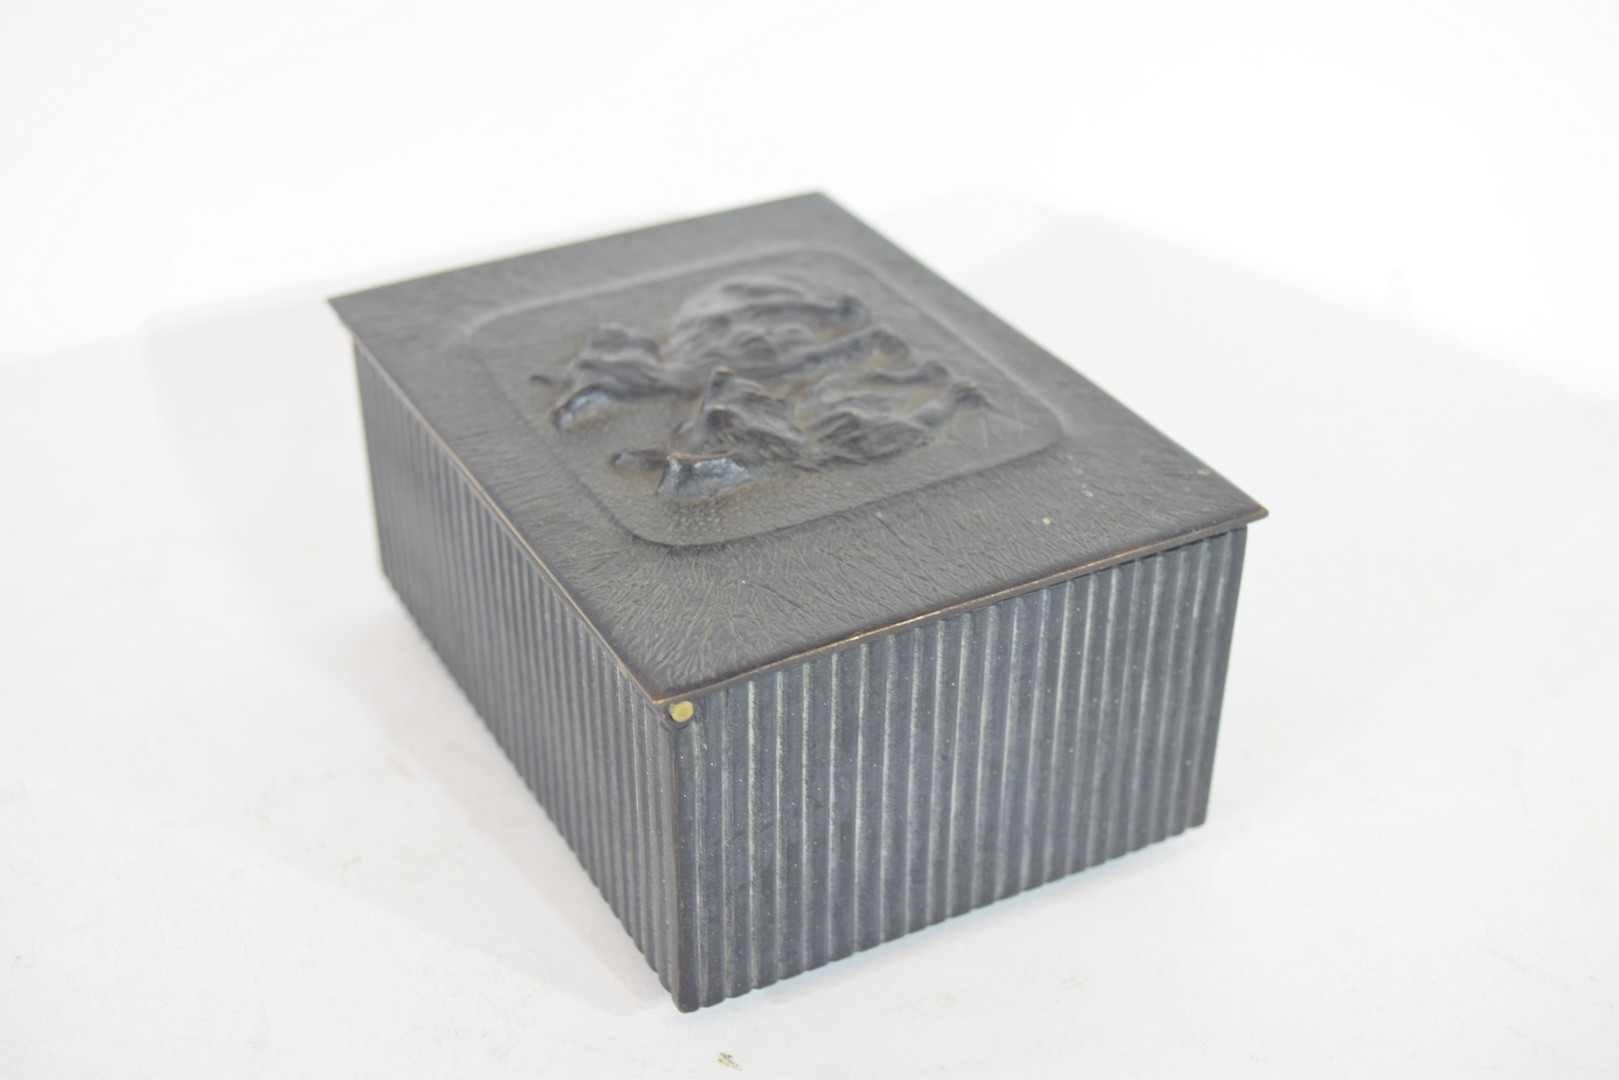 Box, the top modelled with two Corgi style dogs - Image 4 of 6